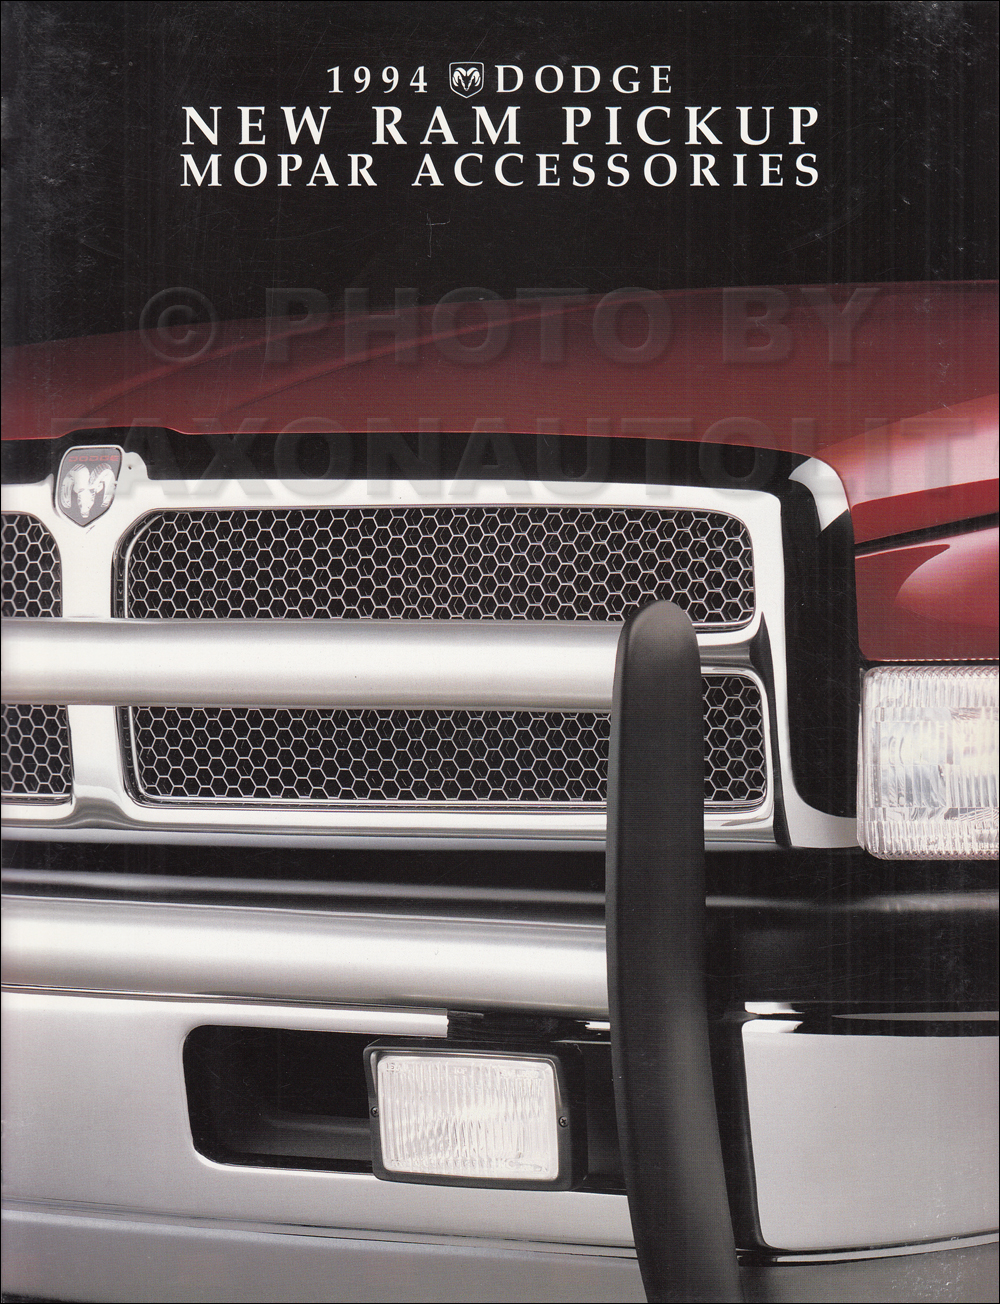 1994 Dodge Ram Pickup Accessory Facts Book Original EARLY